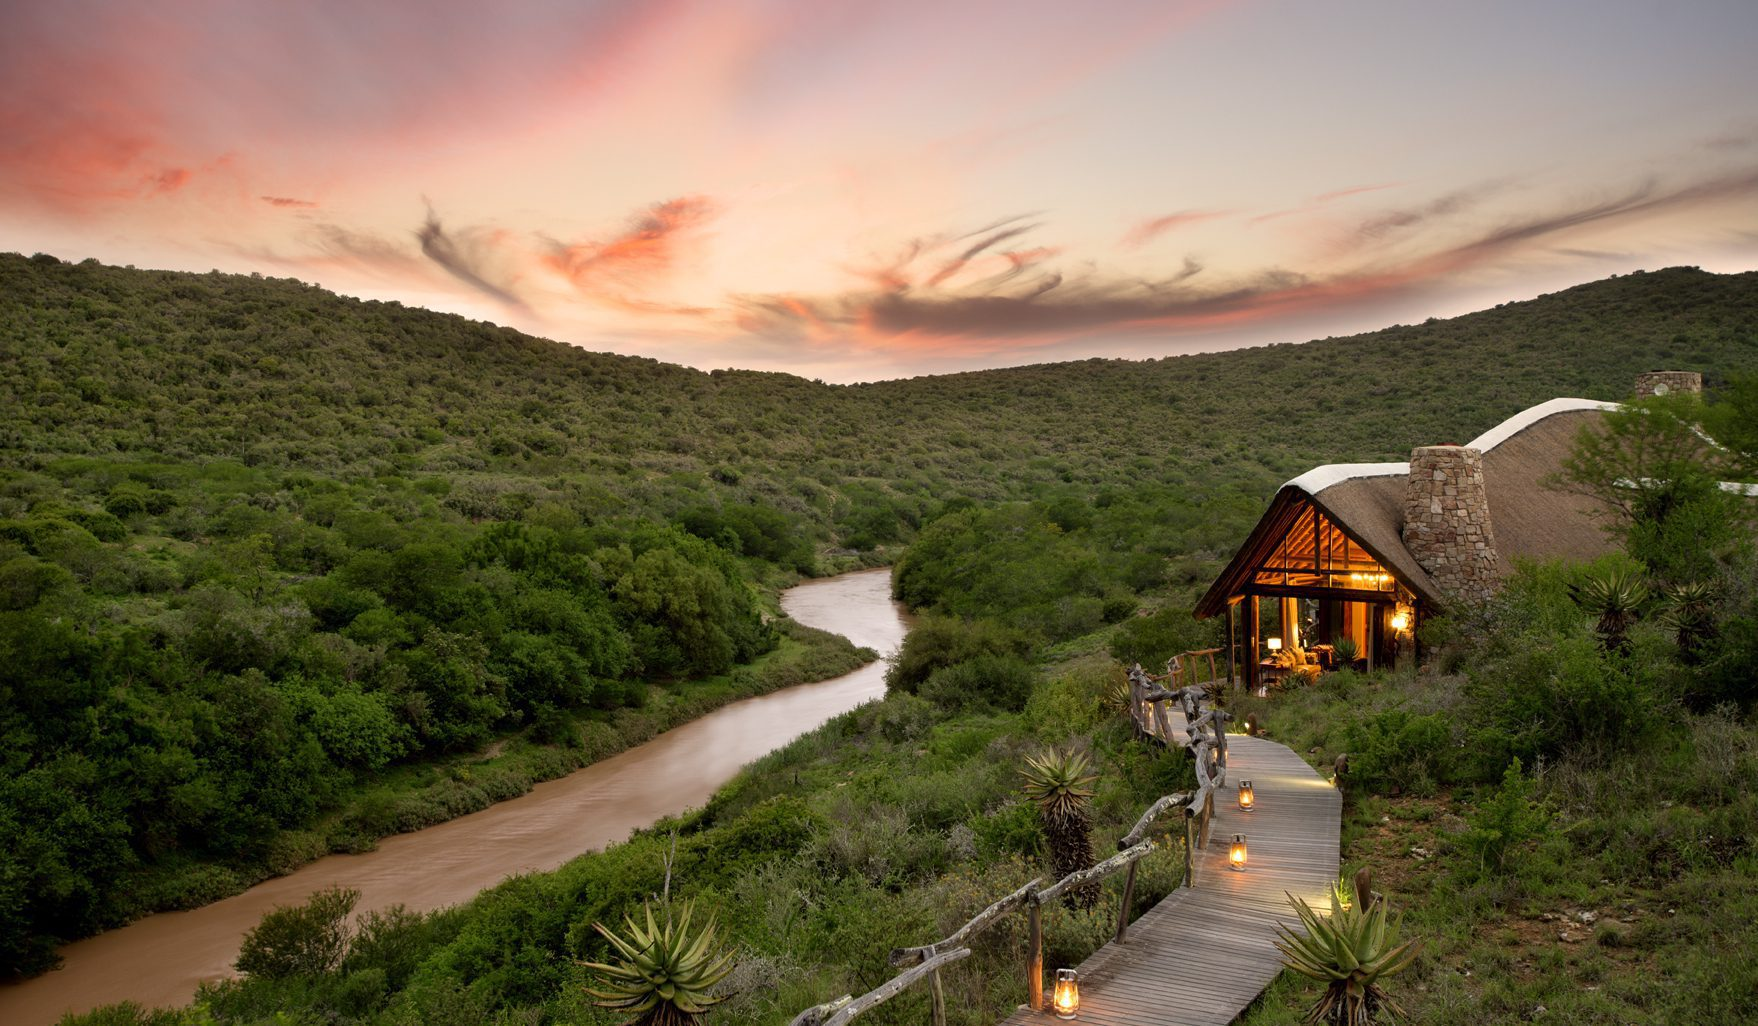 beautiful dusk view of the orange sky over the calm river at kwandwes great fish river lodge